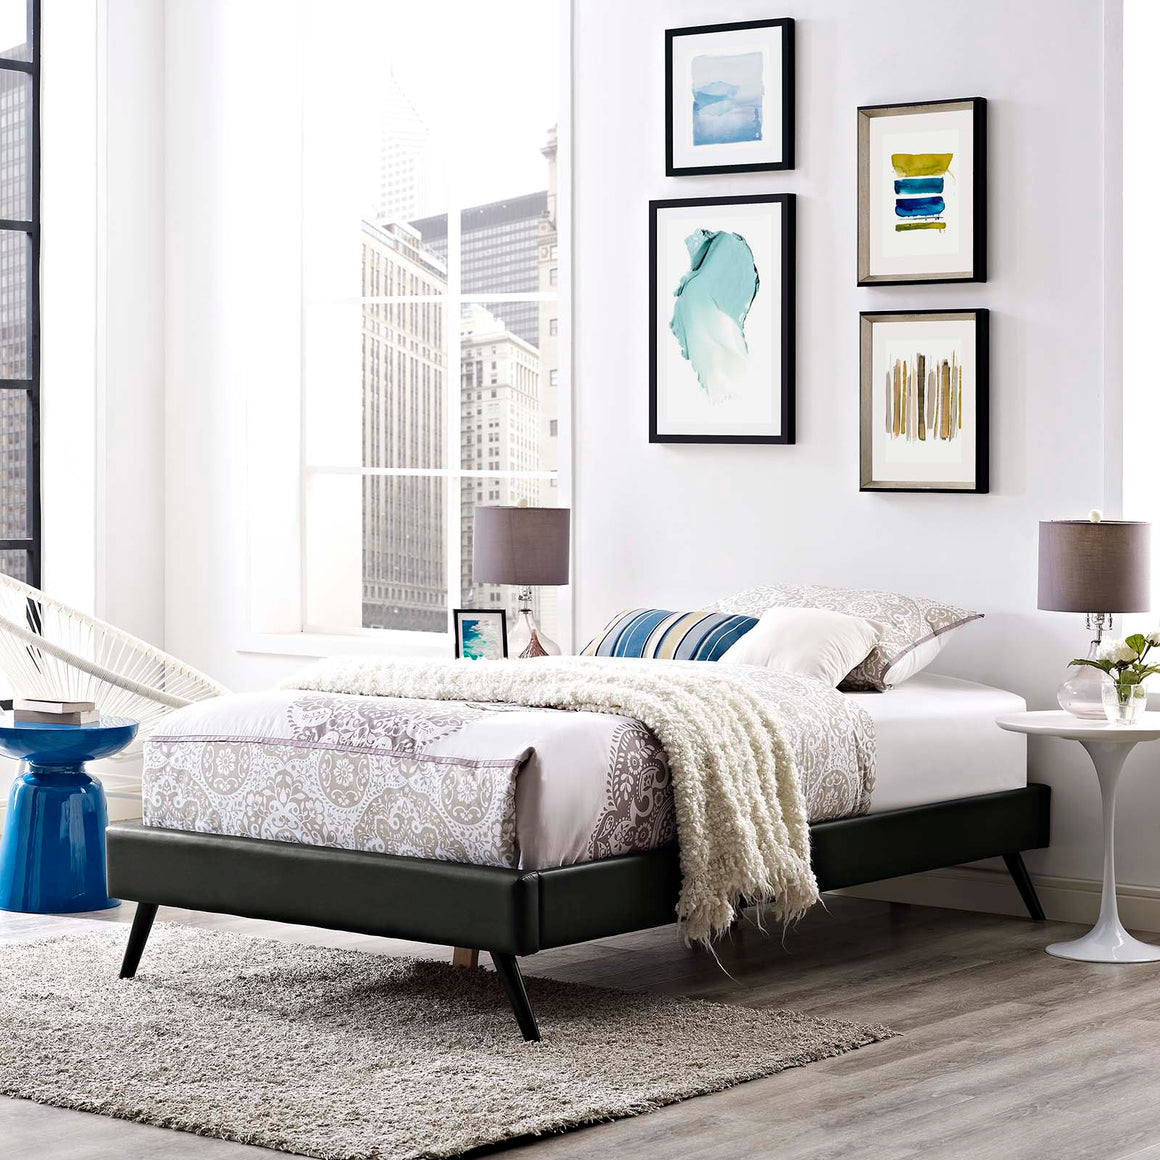 LORYN TWIN VINYL BED FRAME WITH ROUND SPLAYED LEGS